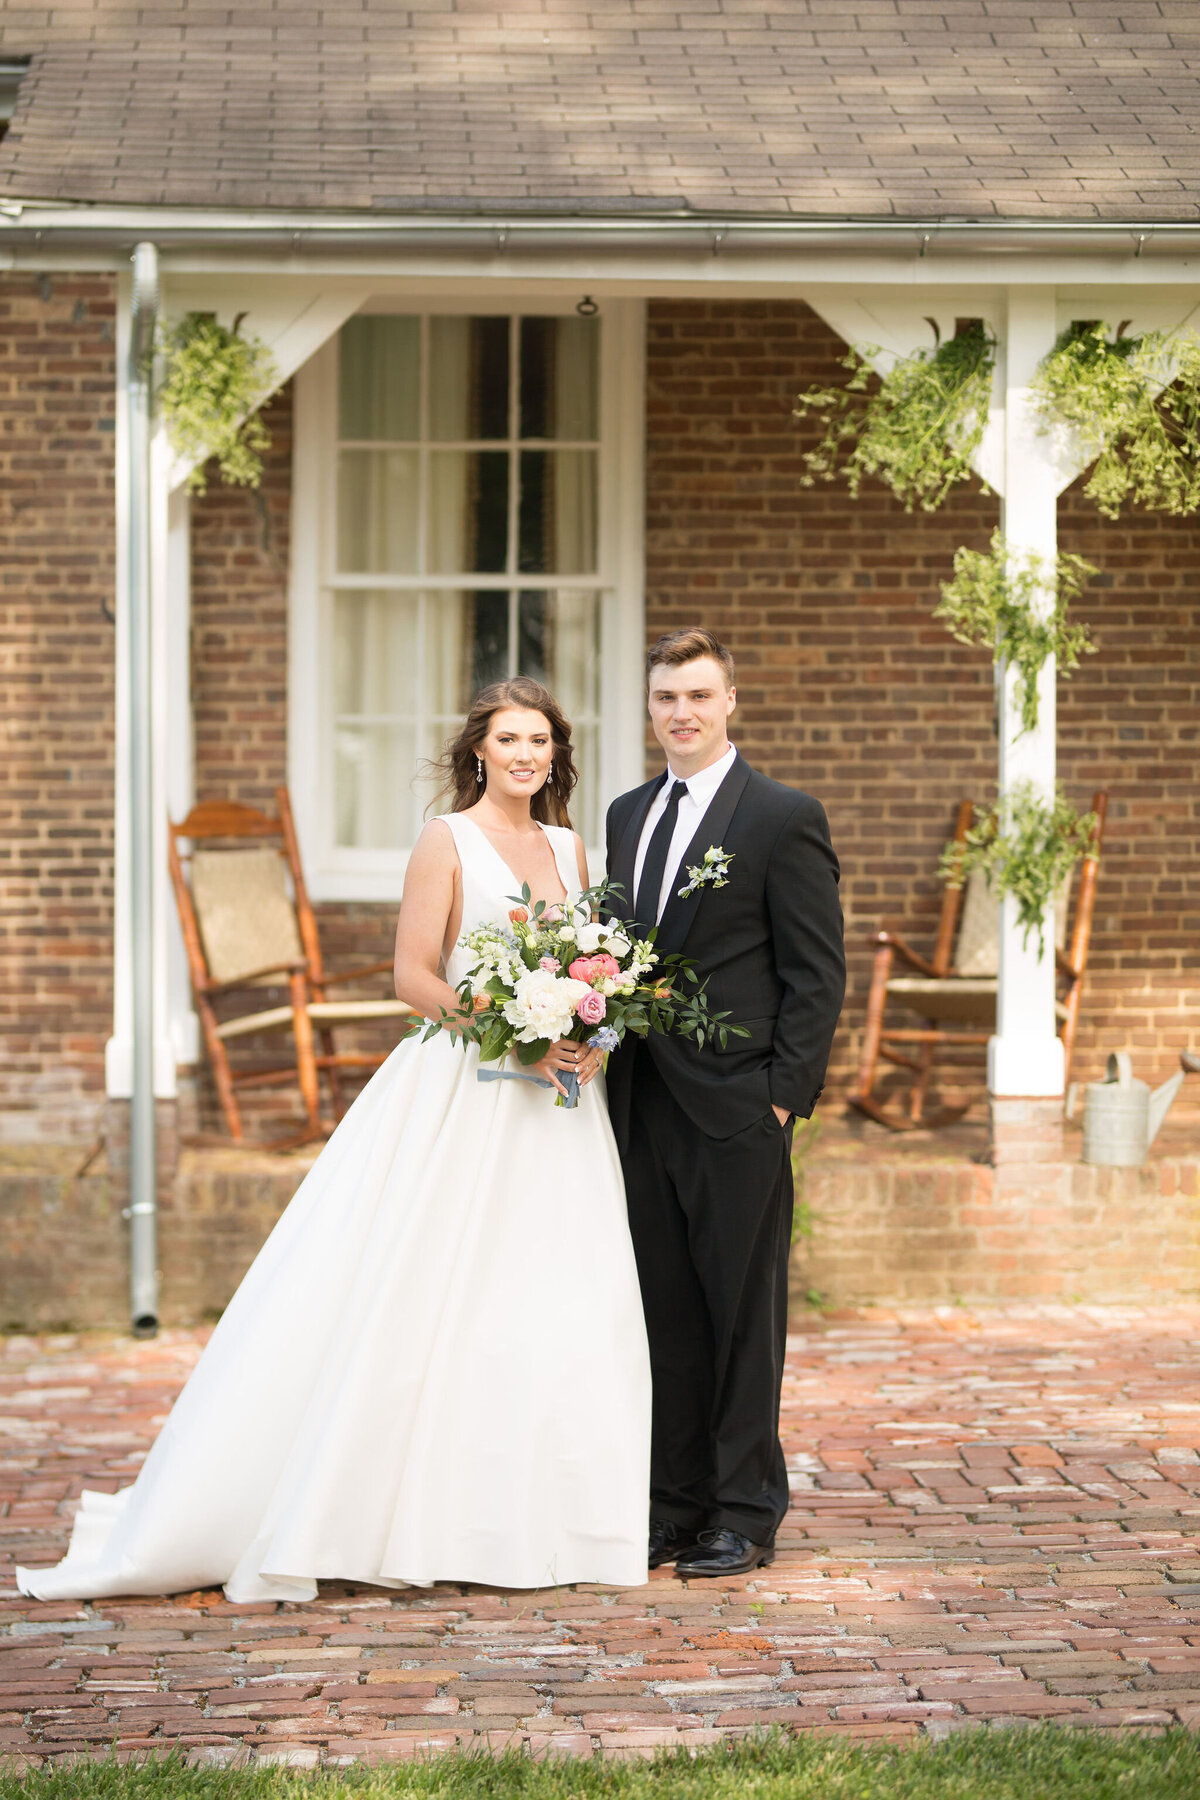 Lynwood Estate - Luxury Kentucky Wedding Venue - Styled Shoot 00002